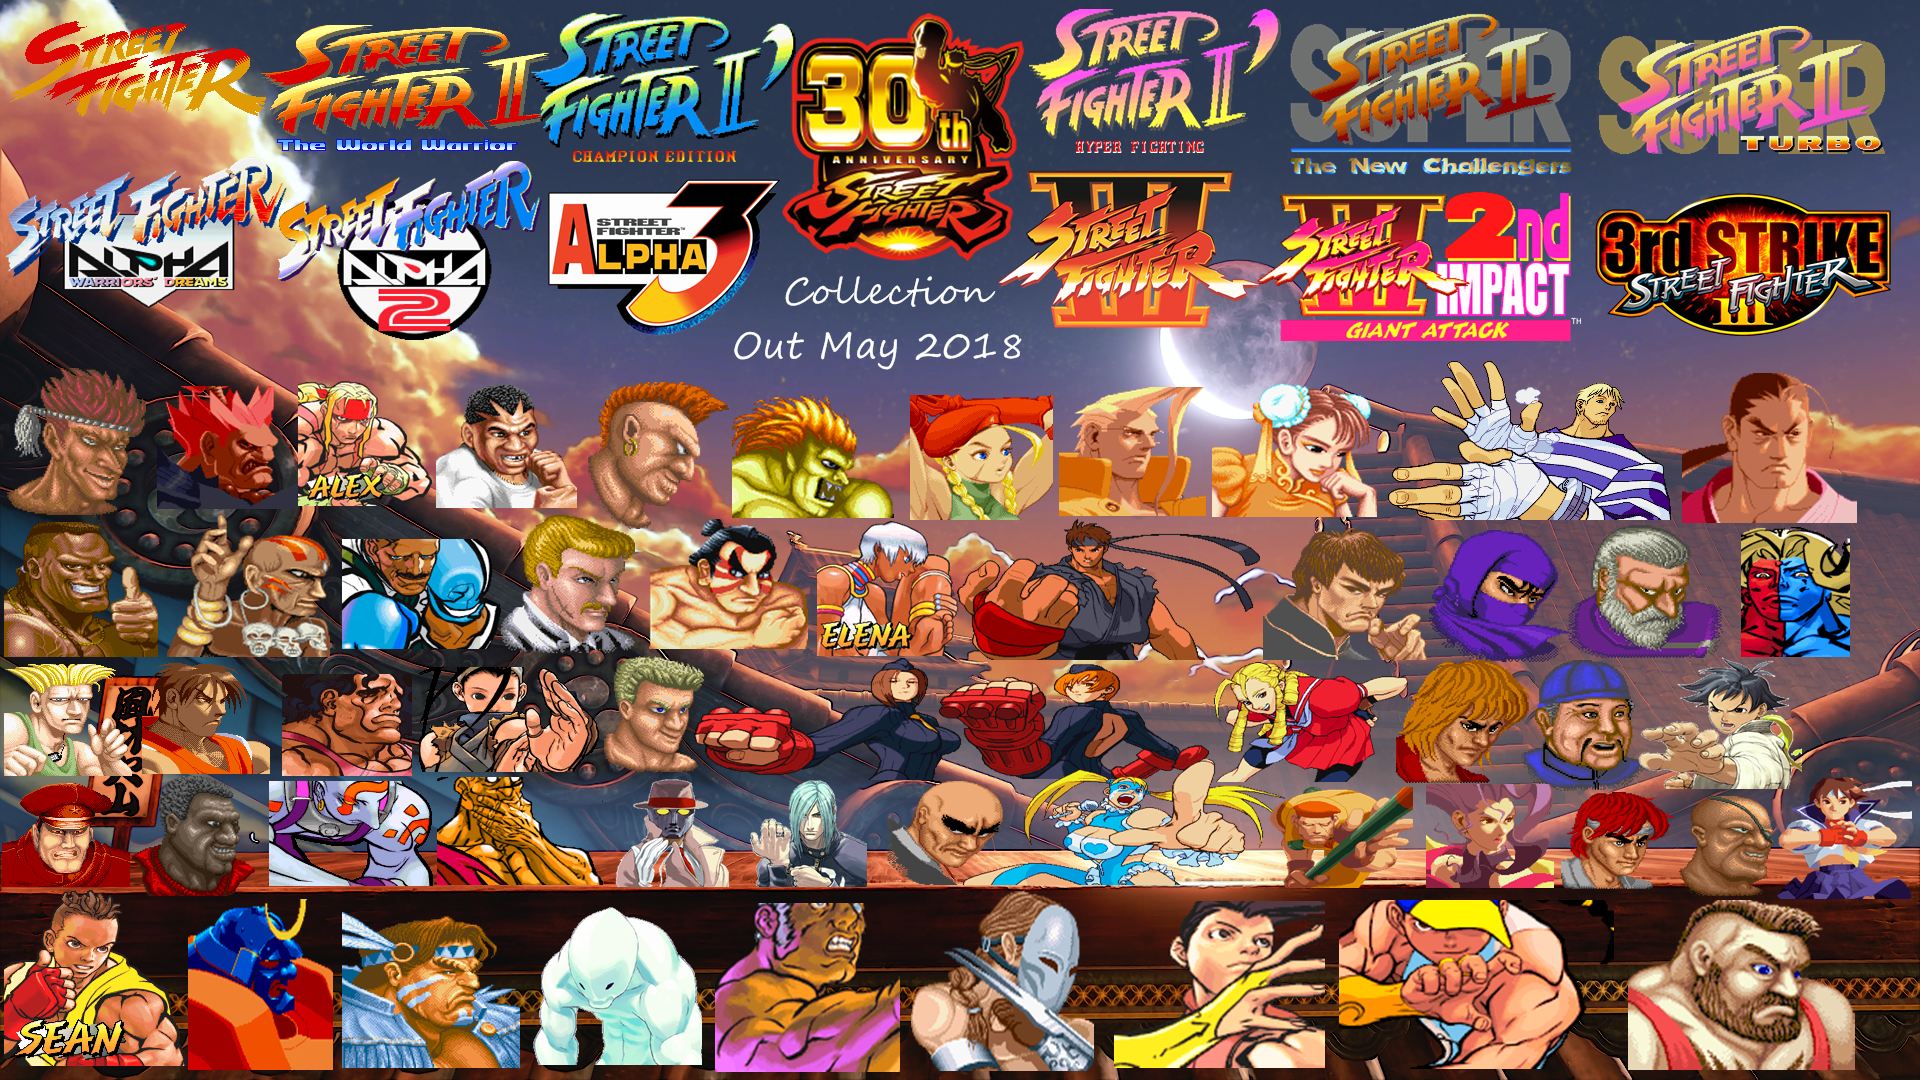 Street Fighter 30th Anniversary Collection Wallpap By Yoink17 On